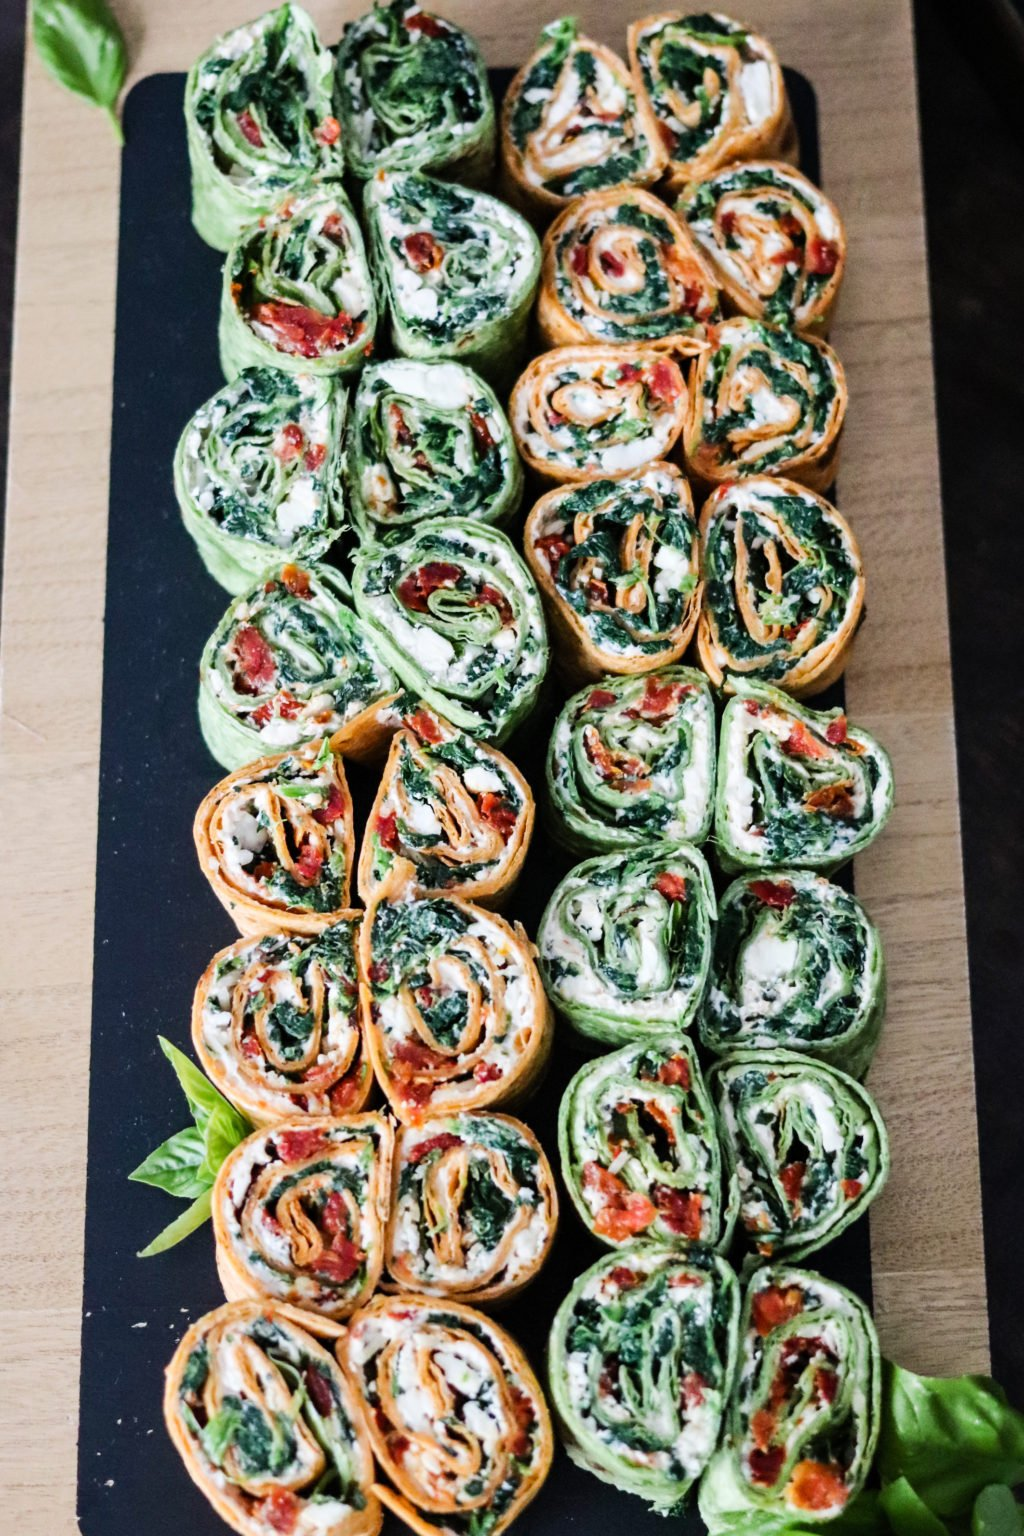 Mediterranean Pinwheels are an easy vegetarian appetizer! Stuffed with 3 cheeses, spinach, sun-dried tomatoes, and fresh basil, they are a HUGE crowd pleaser! With VEGAN and LOW CARB options as well!